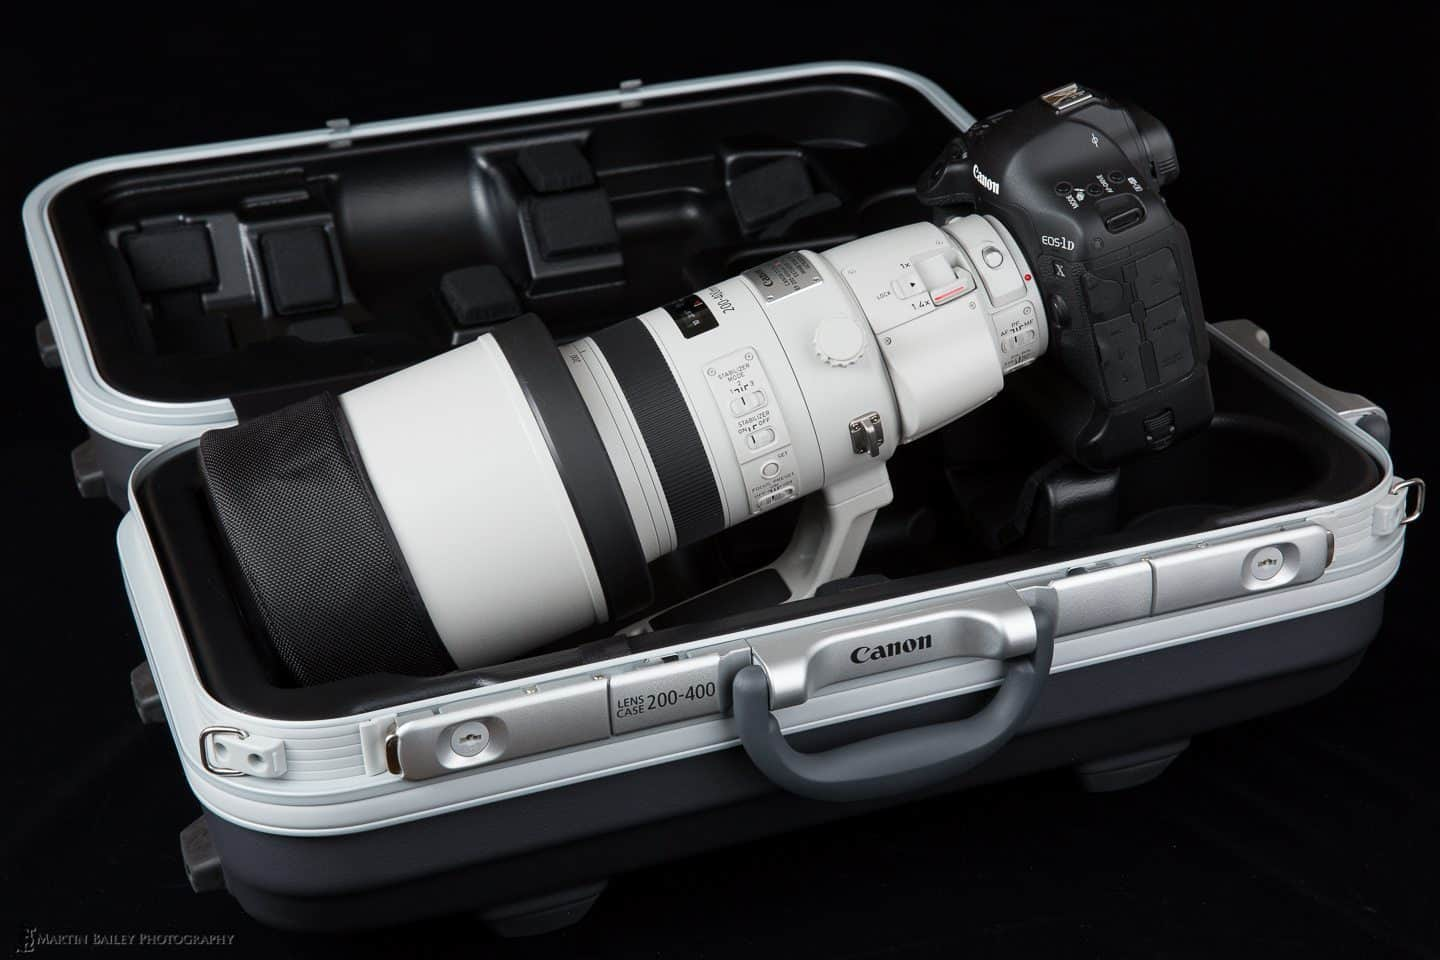 Canon EF 200-400mm F4 L Extender 1.4X Lens in its Case